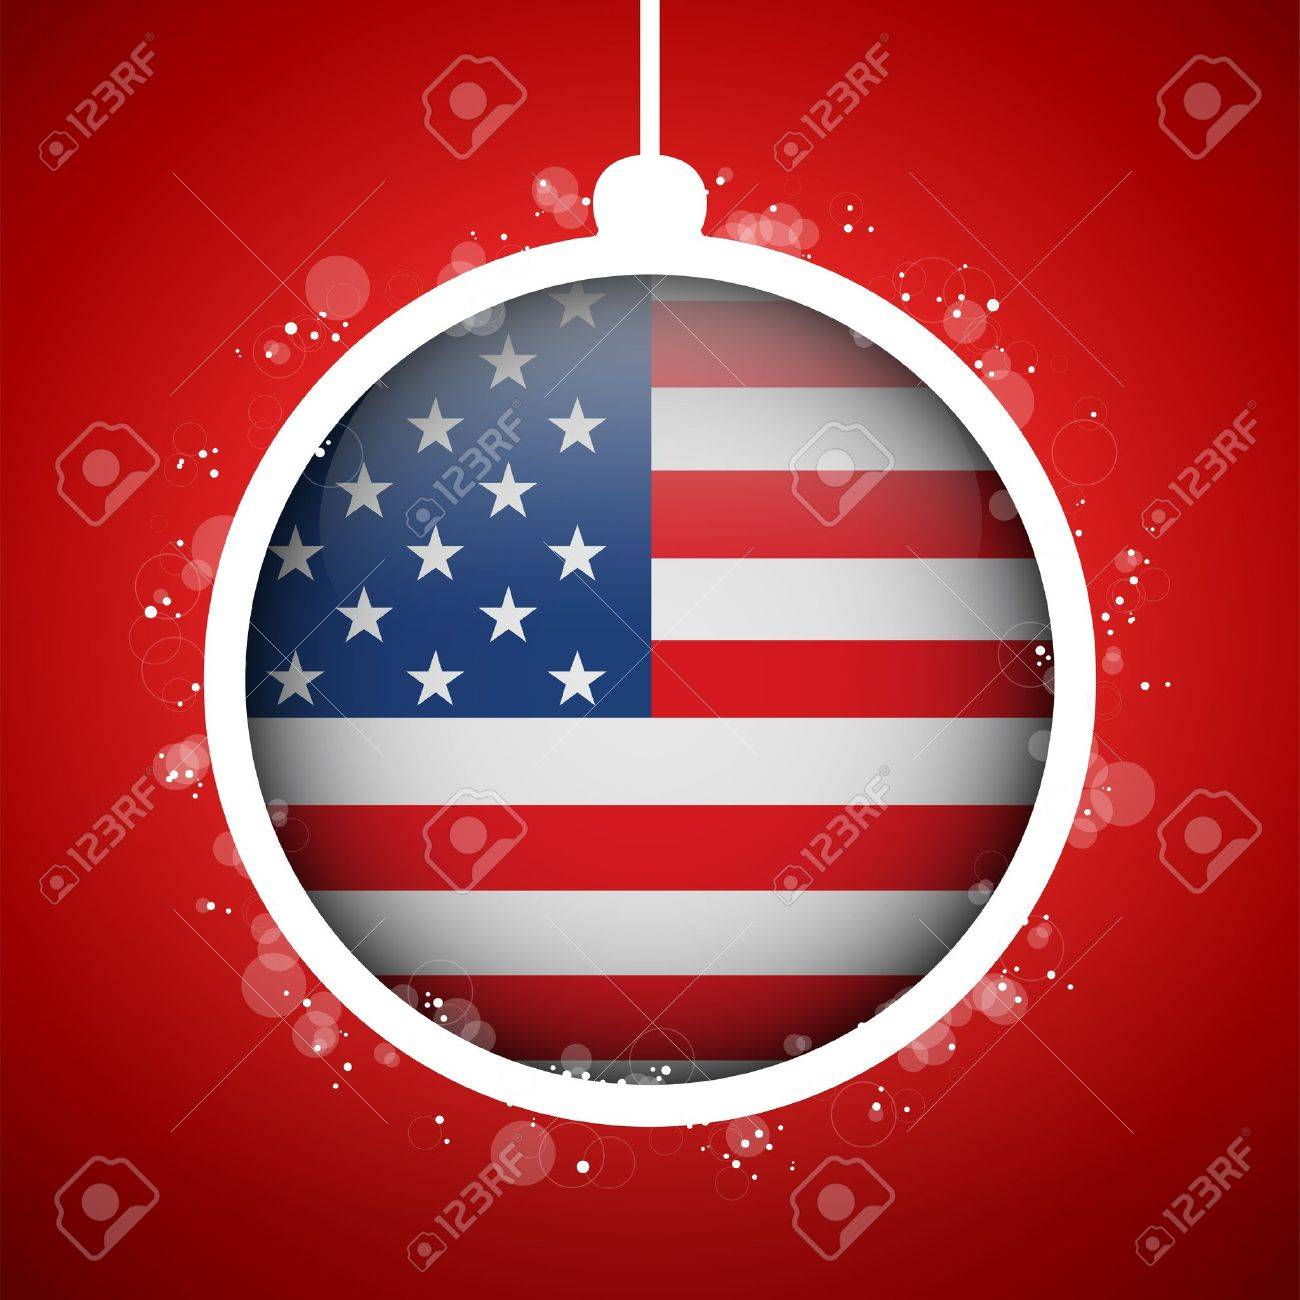 American Flag Hanging Stock Photos & Pictures. Royalty Free ...